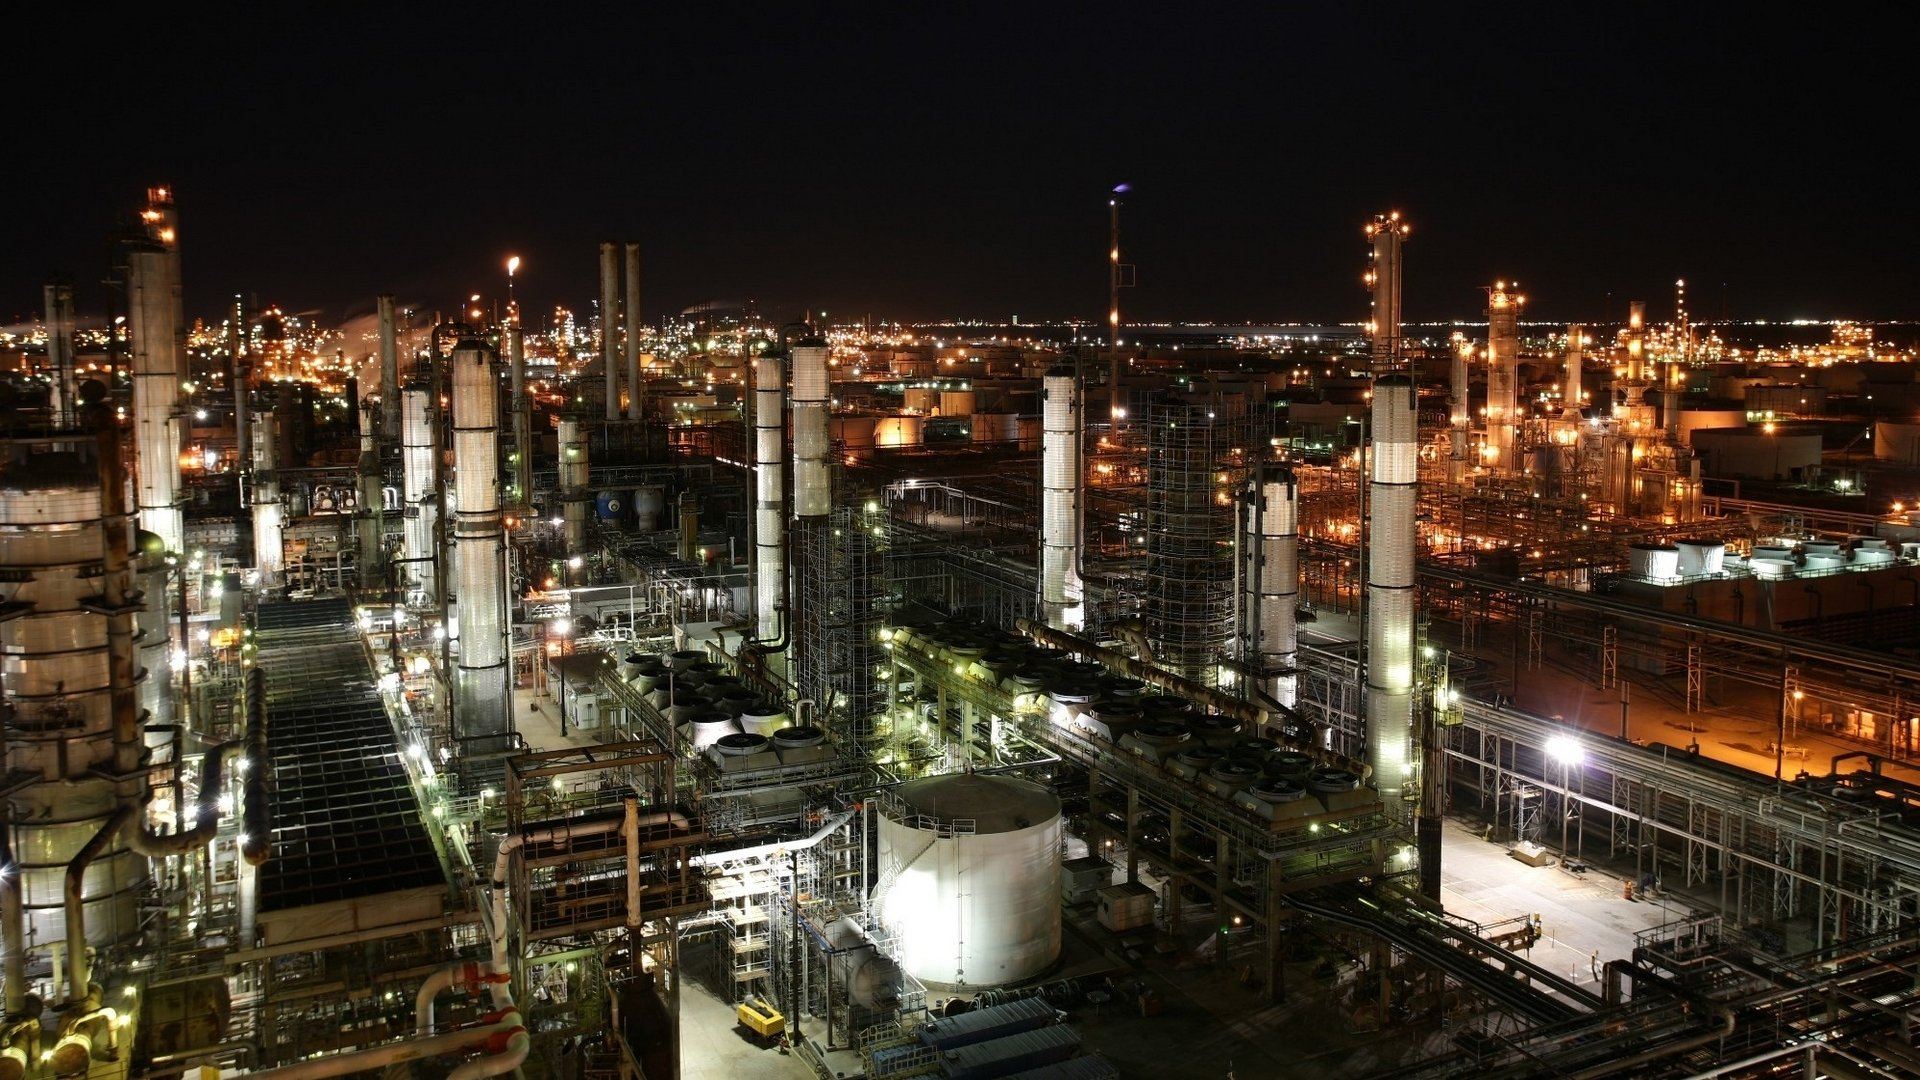 Night Industrial Plants Wallpaper 1920x1080 316771 HD Wallpapers Download Free Images Wallpaper [1000image.com]